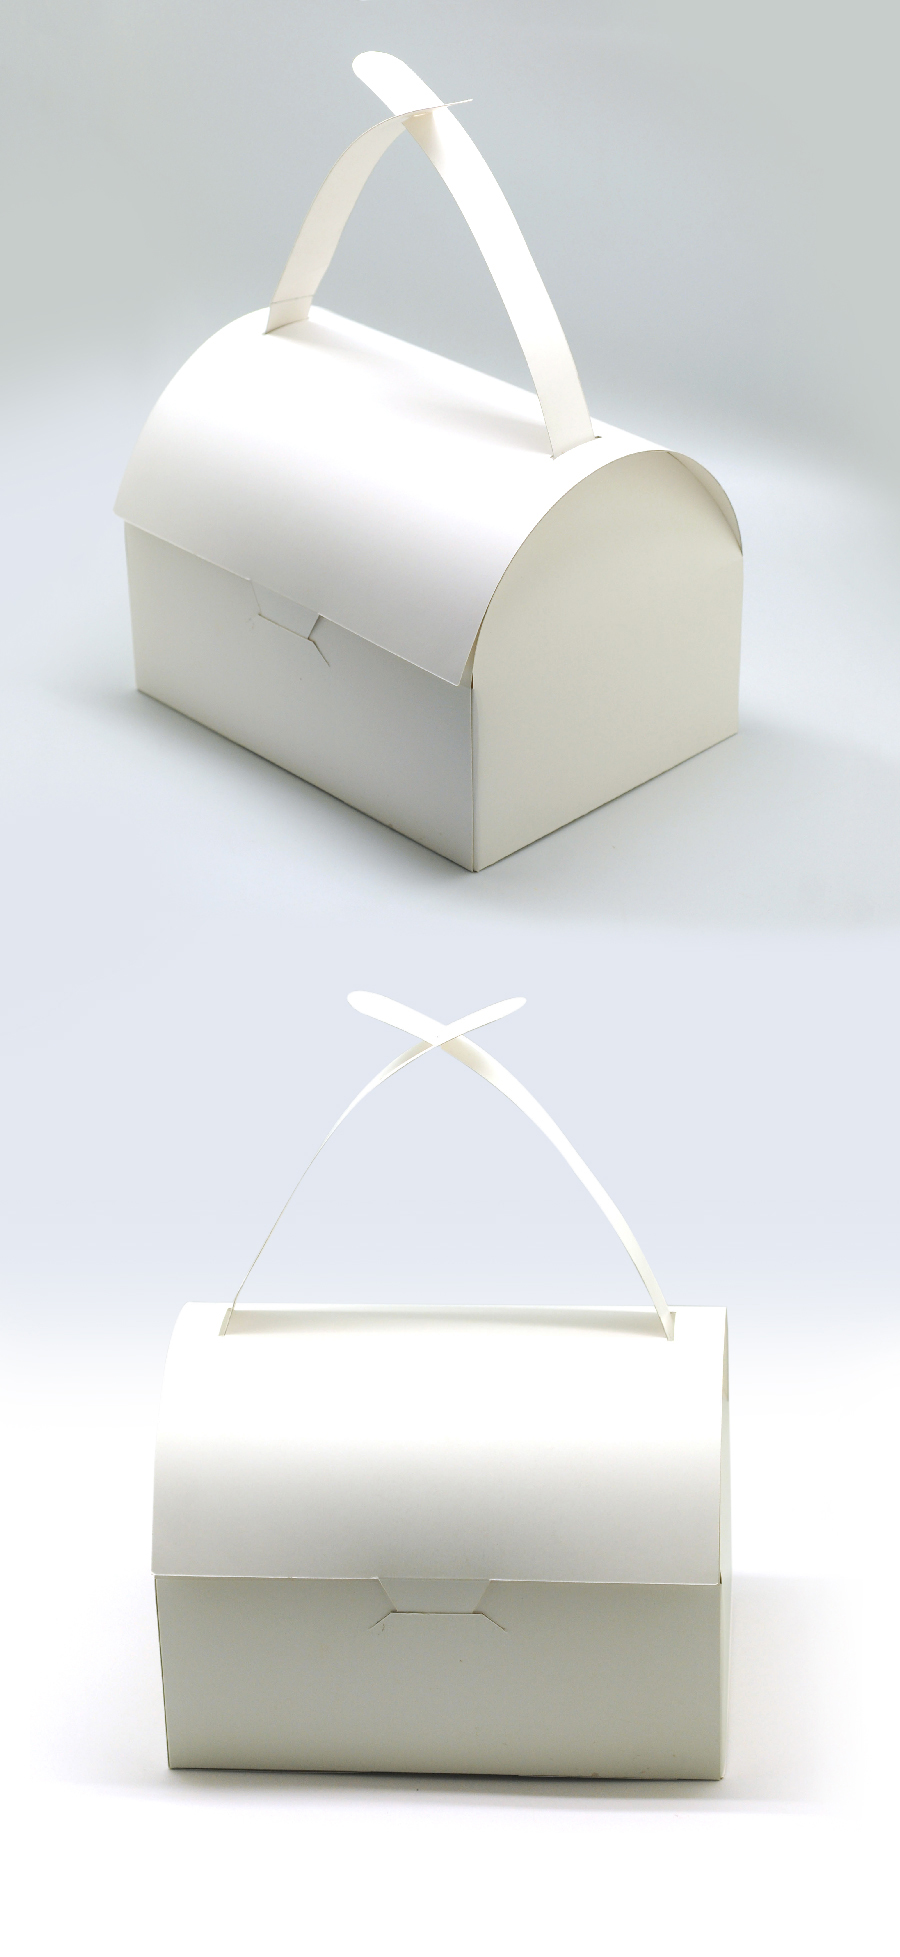 prototype-box1